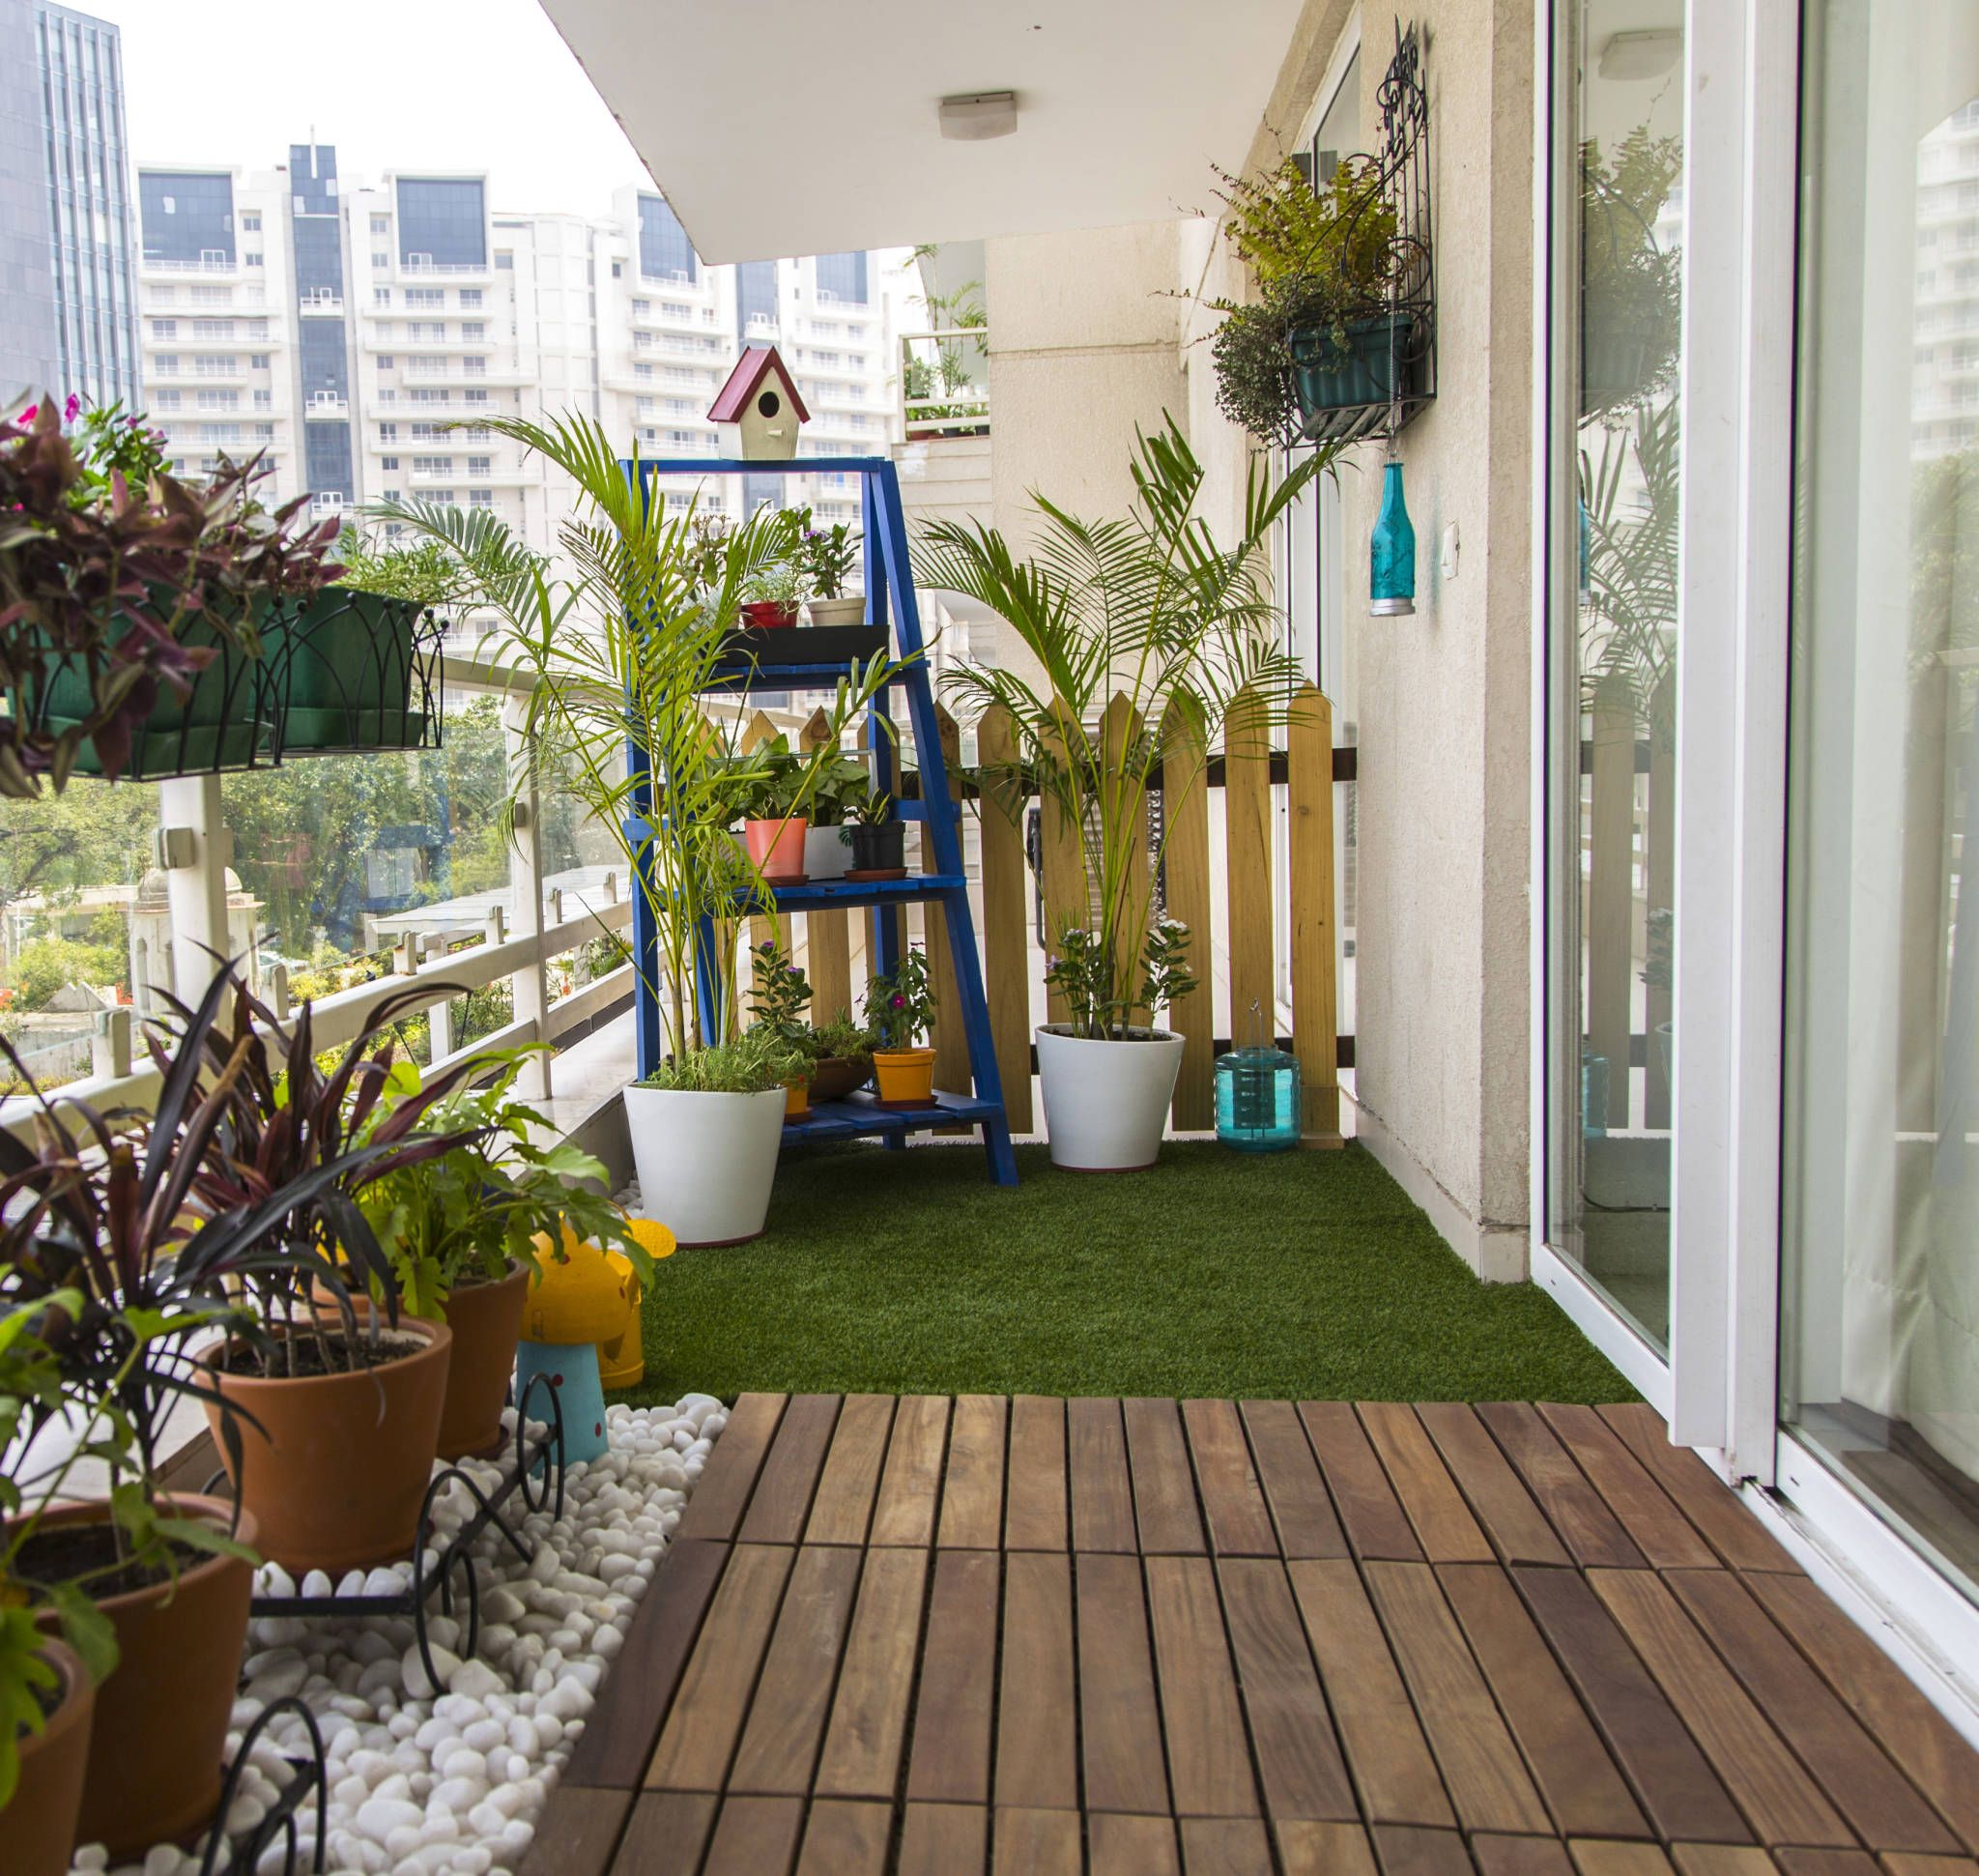 Homify 360º Articles Tips Information Homify: Terraços Por Studio Earthbox